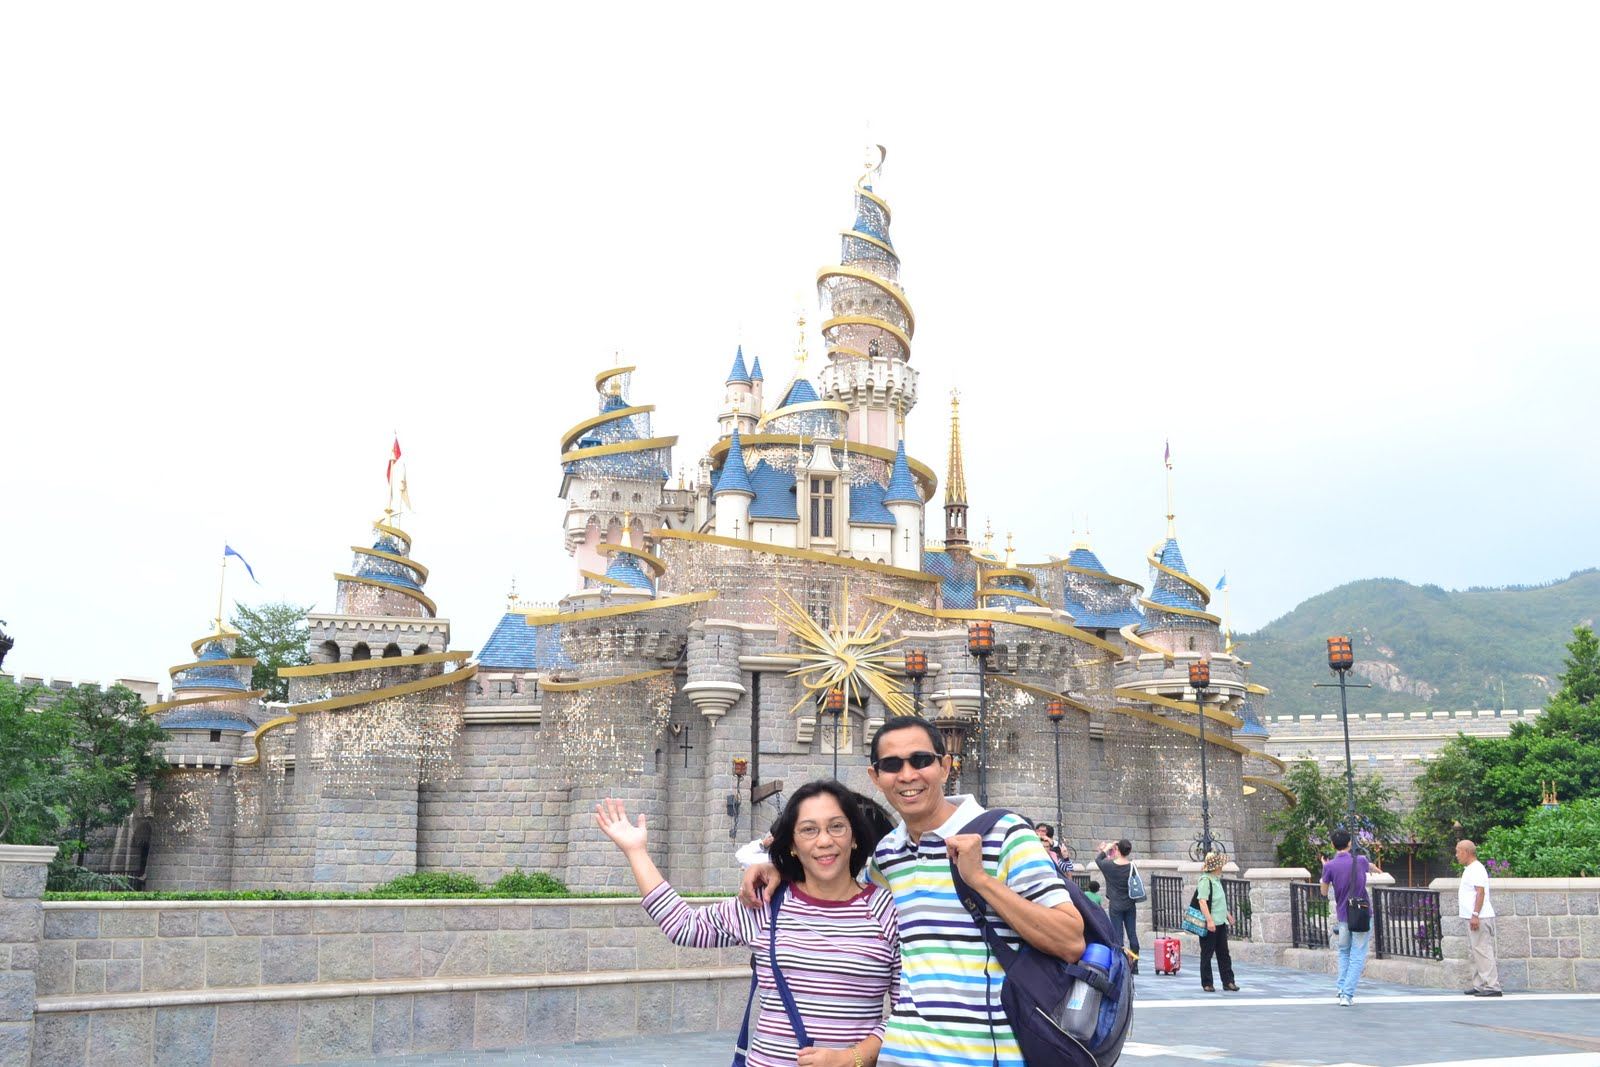 Best Places In The World To Visit Hong Kong Disneyland Best Places In The World To Visit